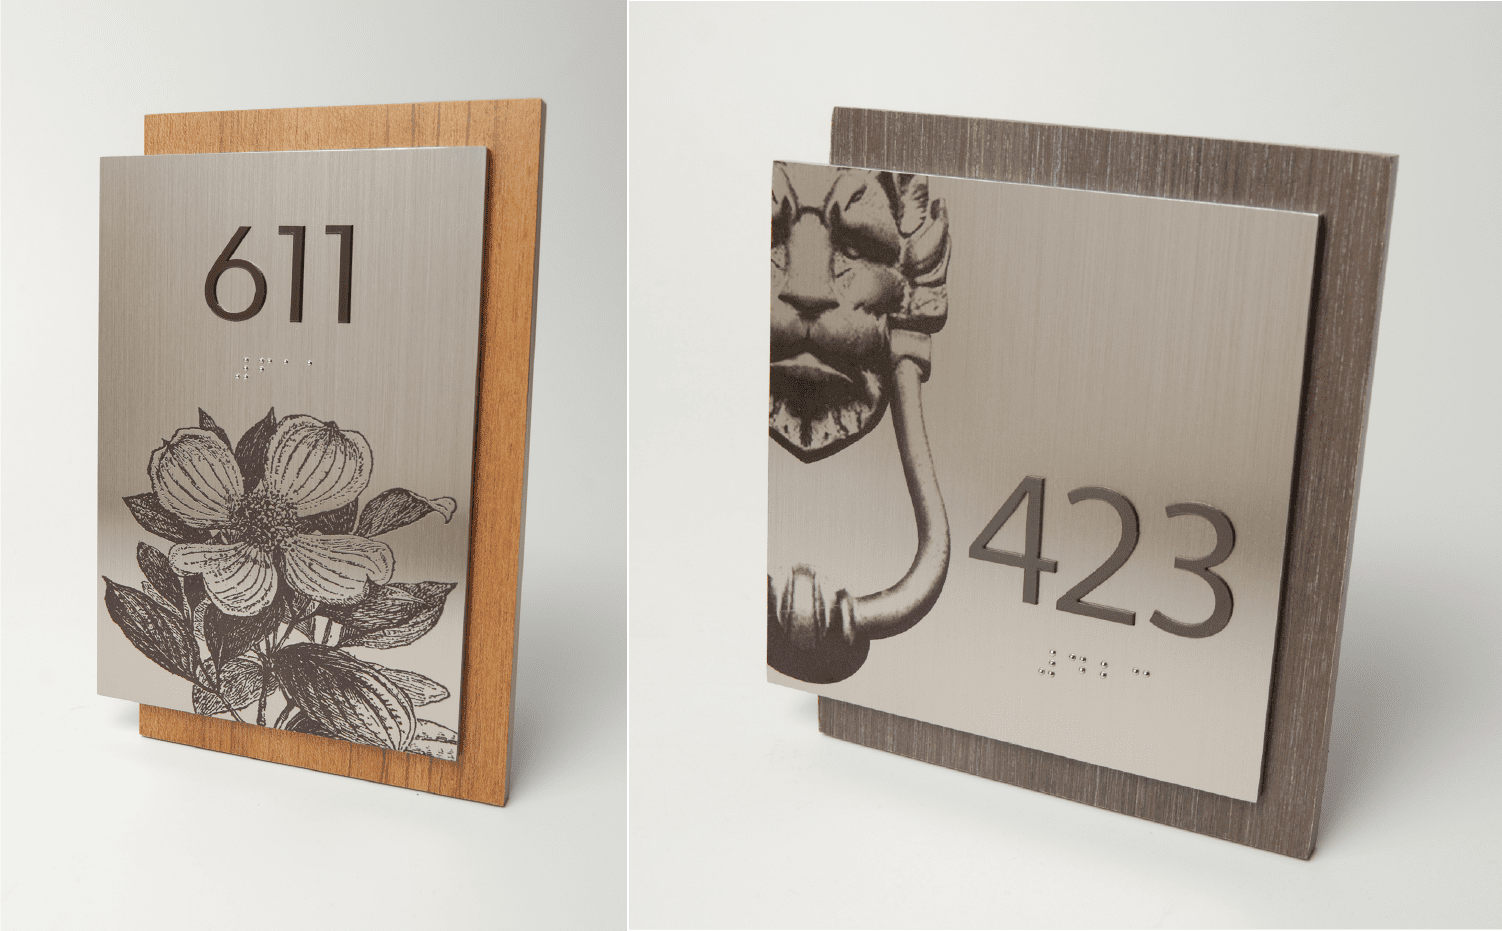 Magnolia Room Numbers for Hotels to nicely complement Branded Hotel Signs, Wayfinding, ADA Signs, and Hospitality Signs